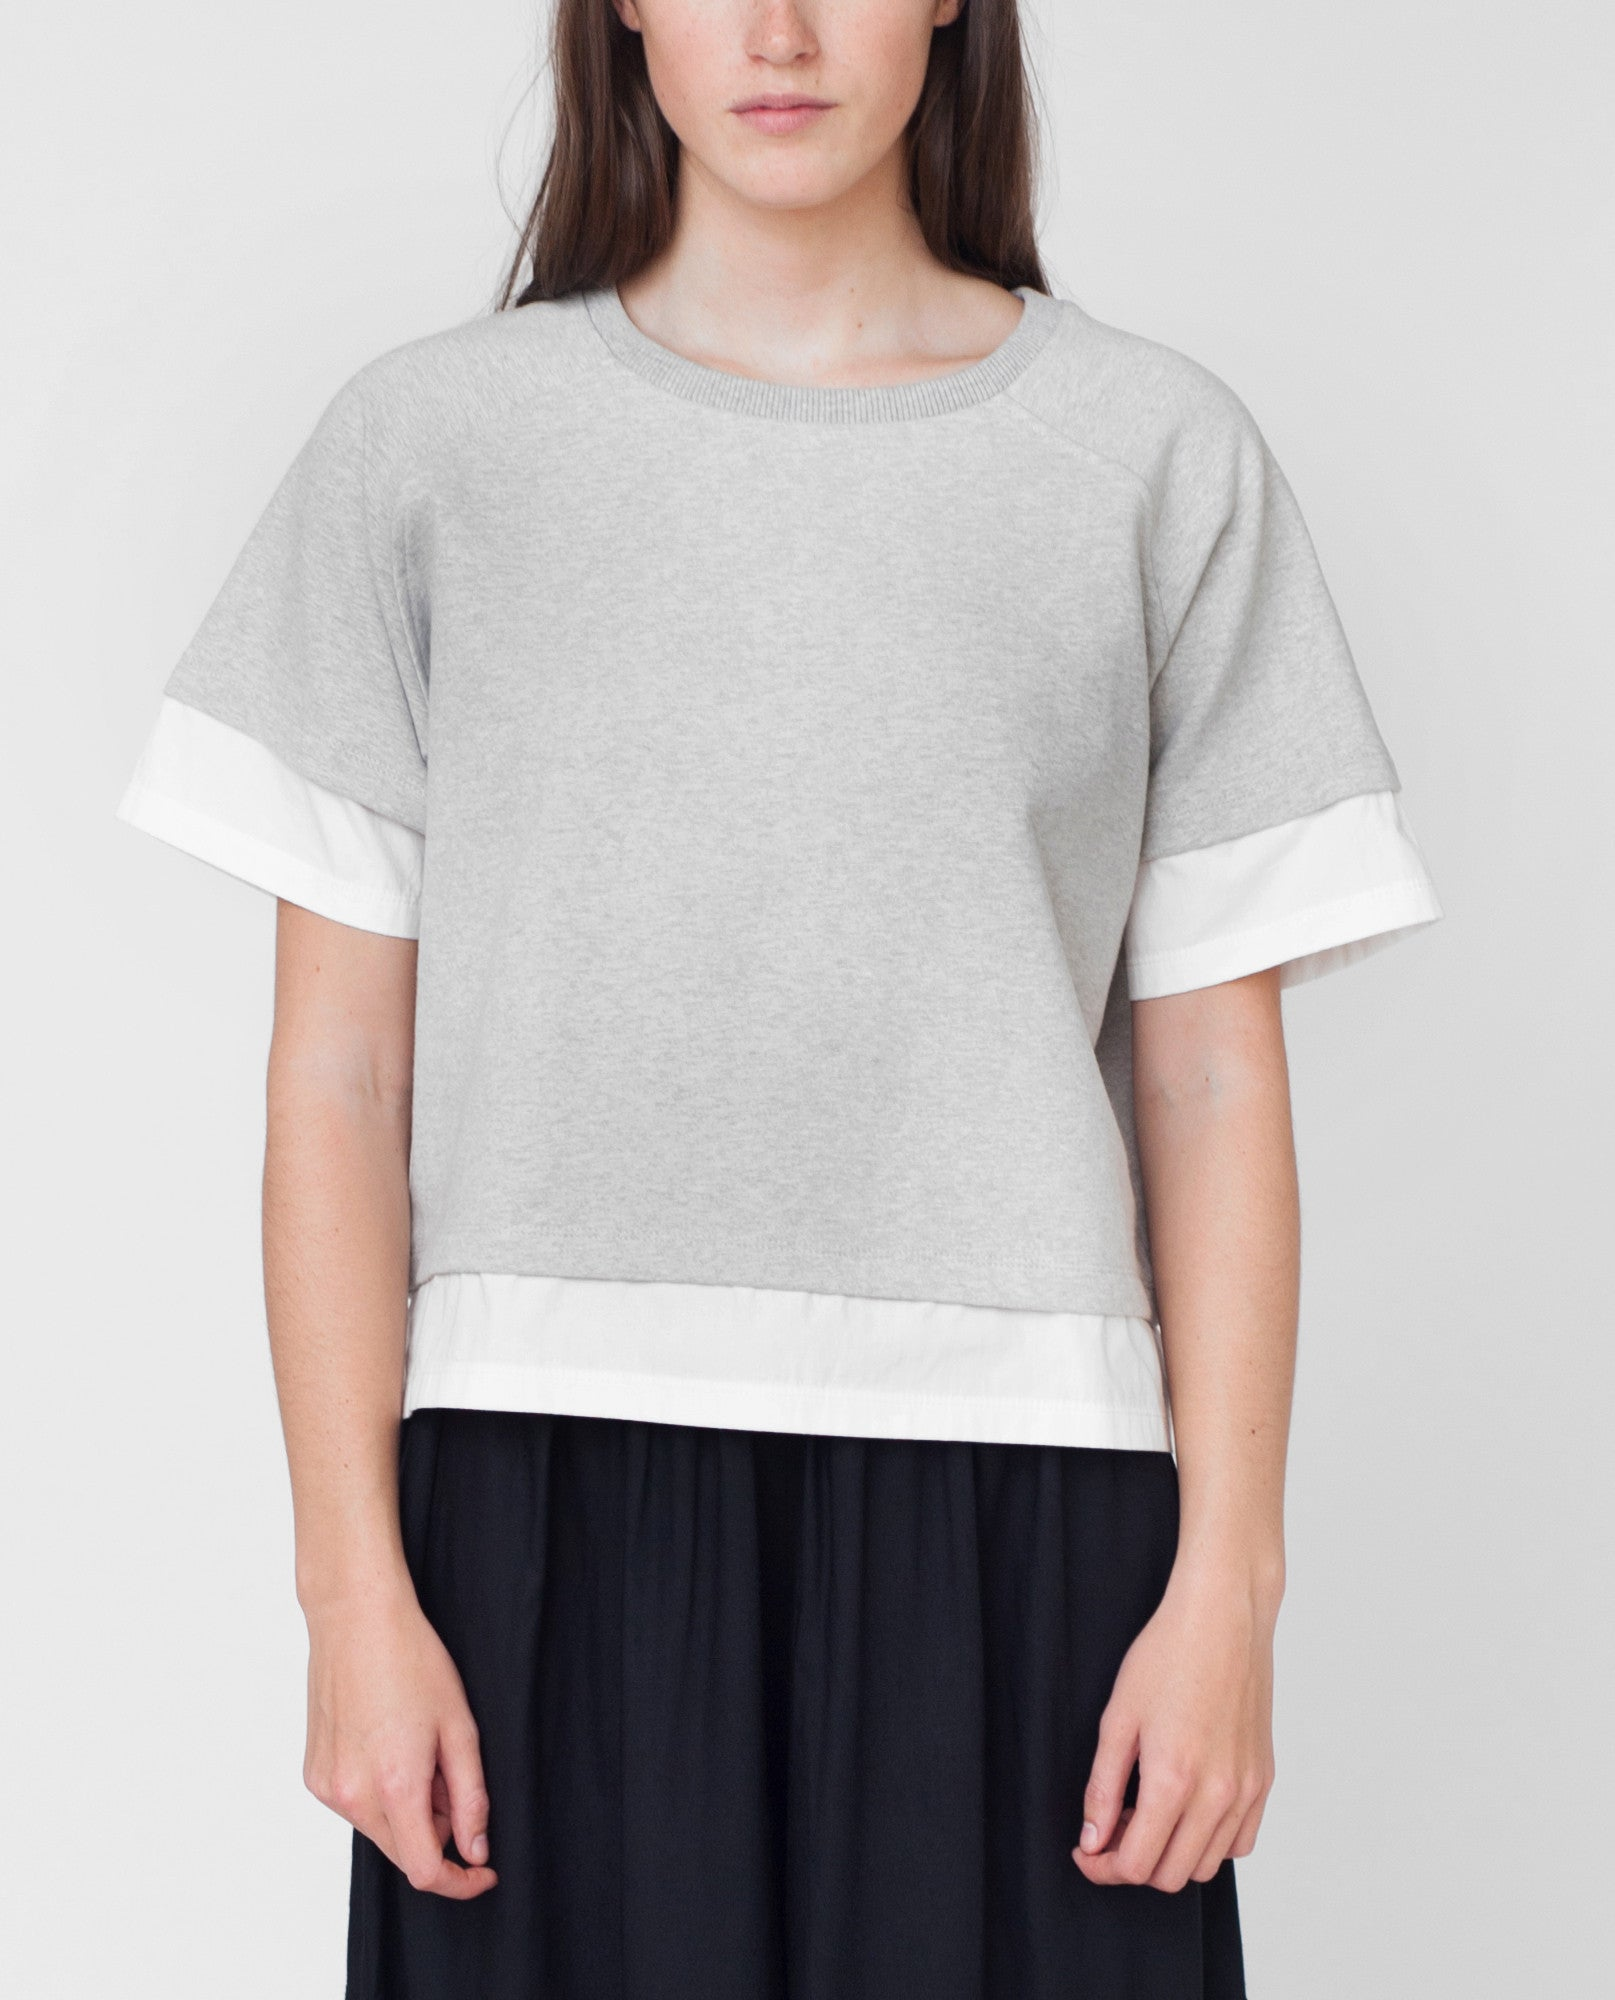 LAURA Organic Cotton Sweatshirt In Light Grey from Beaumont Organic